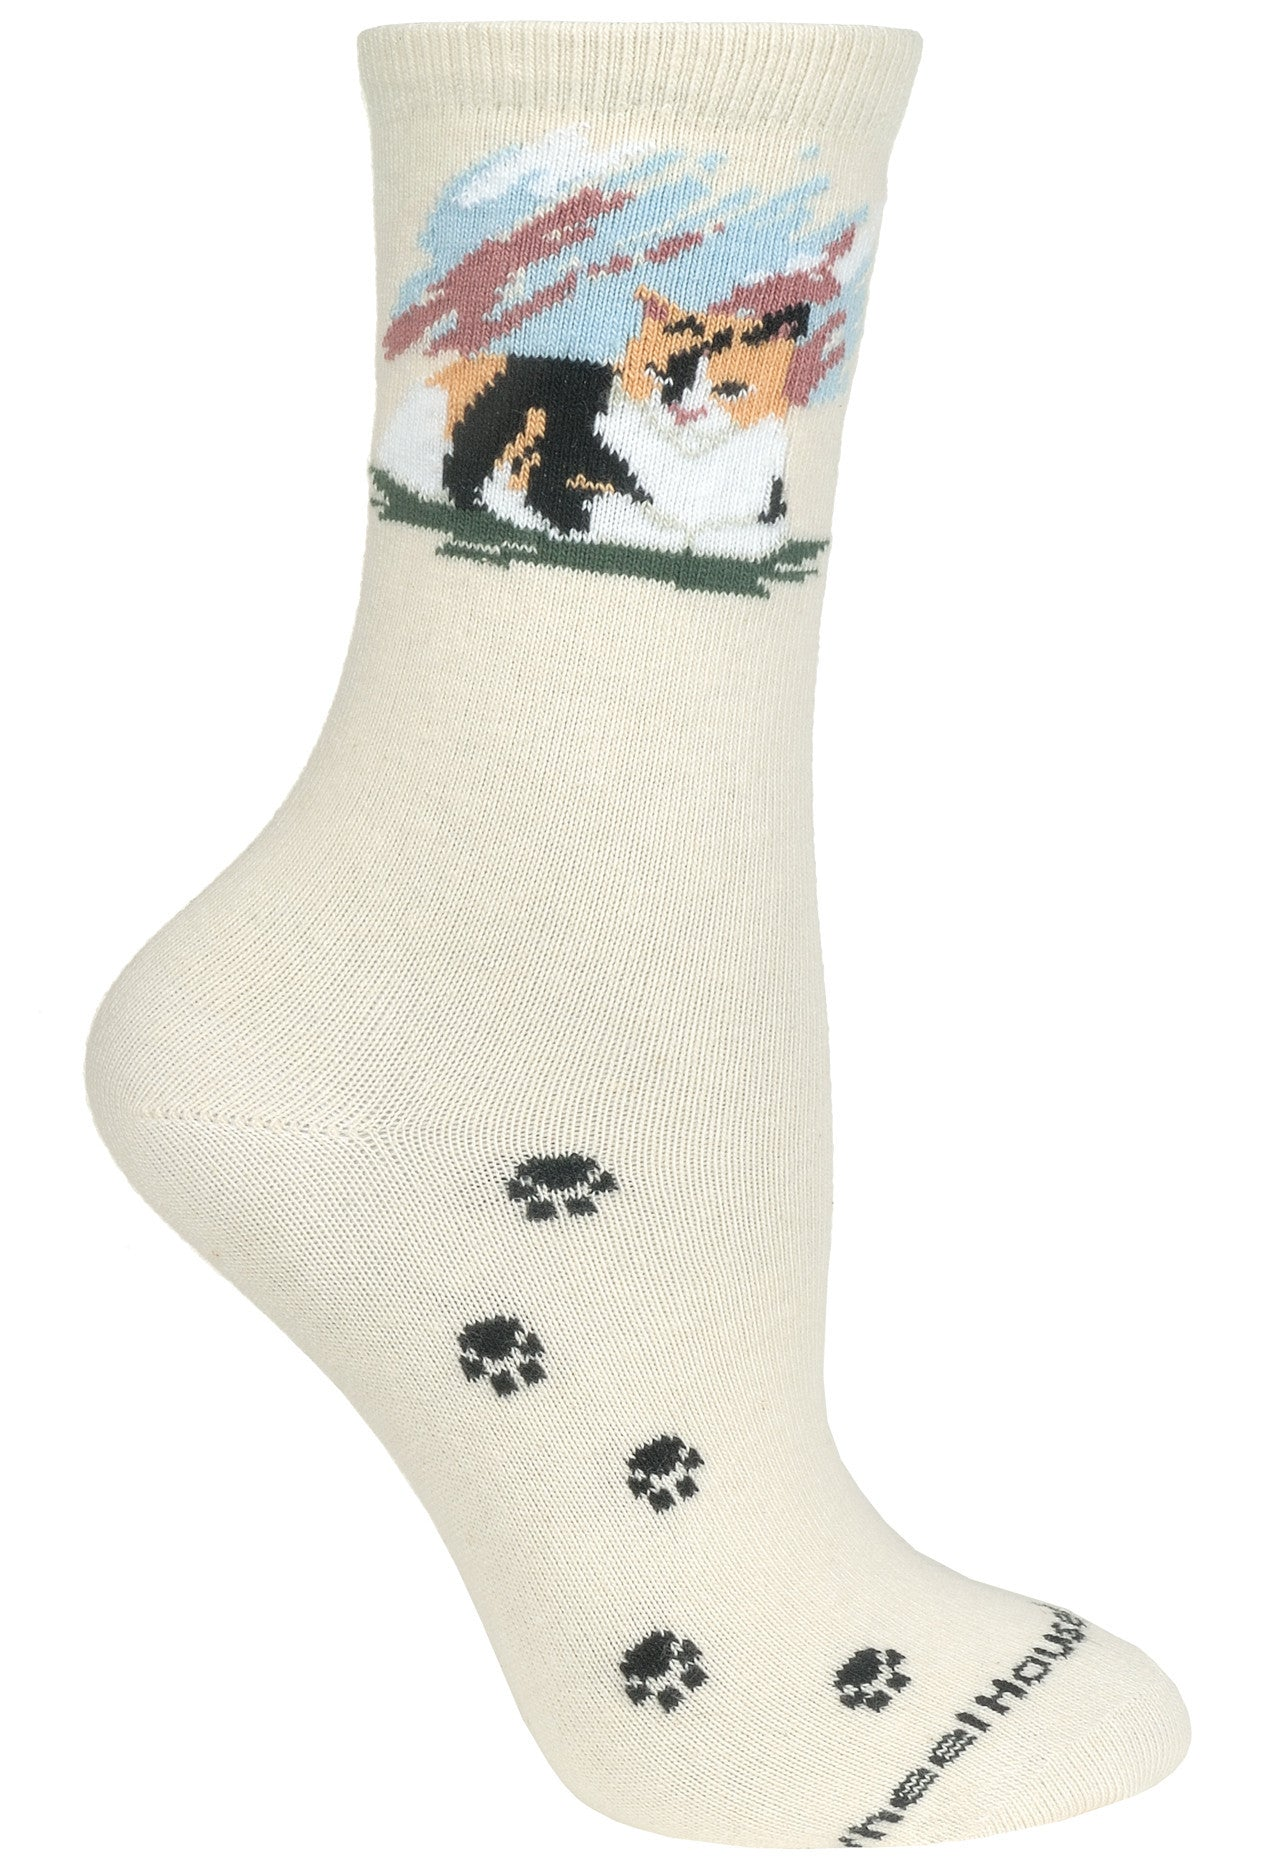 Calico Cats Crew Socks on Natural